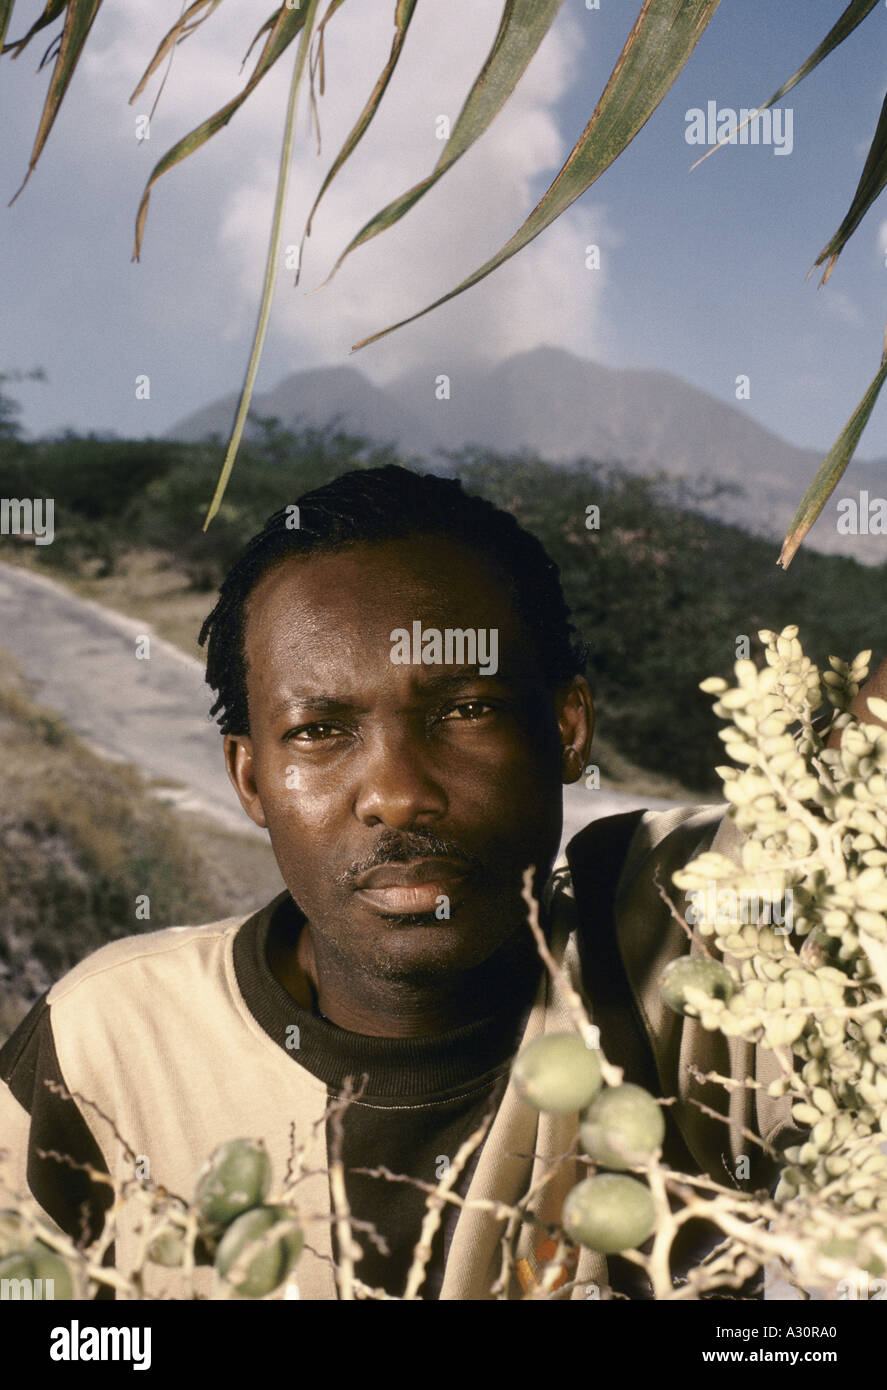 alphonsus cassell local of plymouth who is less convinced about staying on monserrat whilst volcano is rumbling 1997 - Stock Image